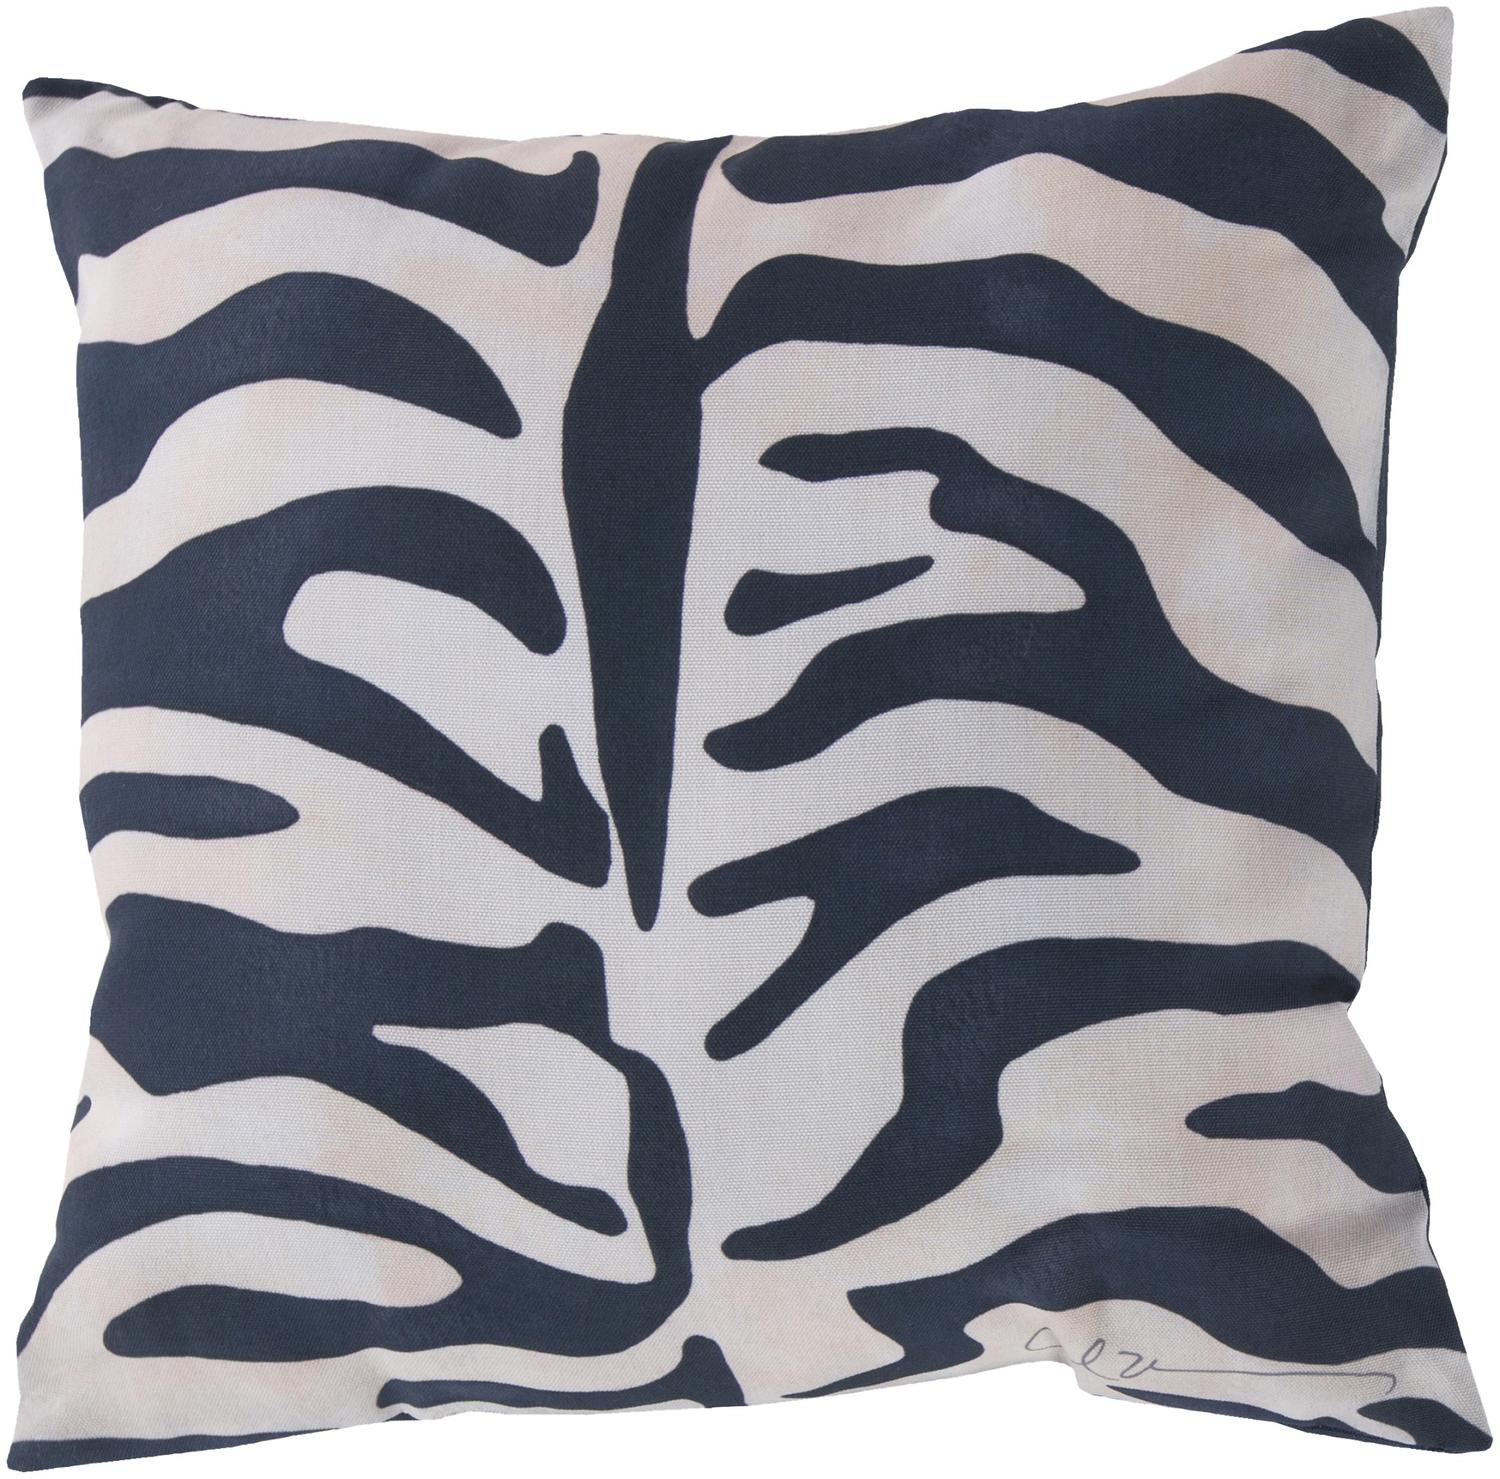 18 Navy Blue And Ivory Zebra Print Decorative Pillow Shell Walmart Com Walmart Com